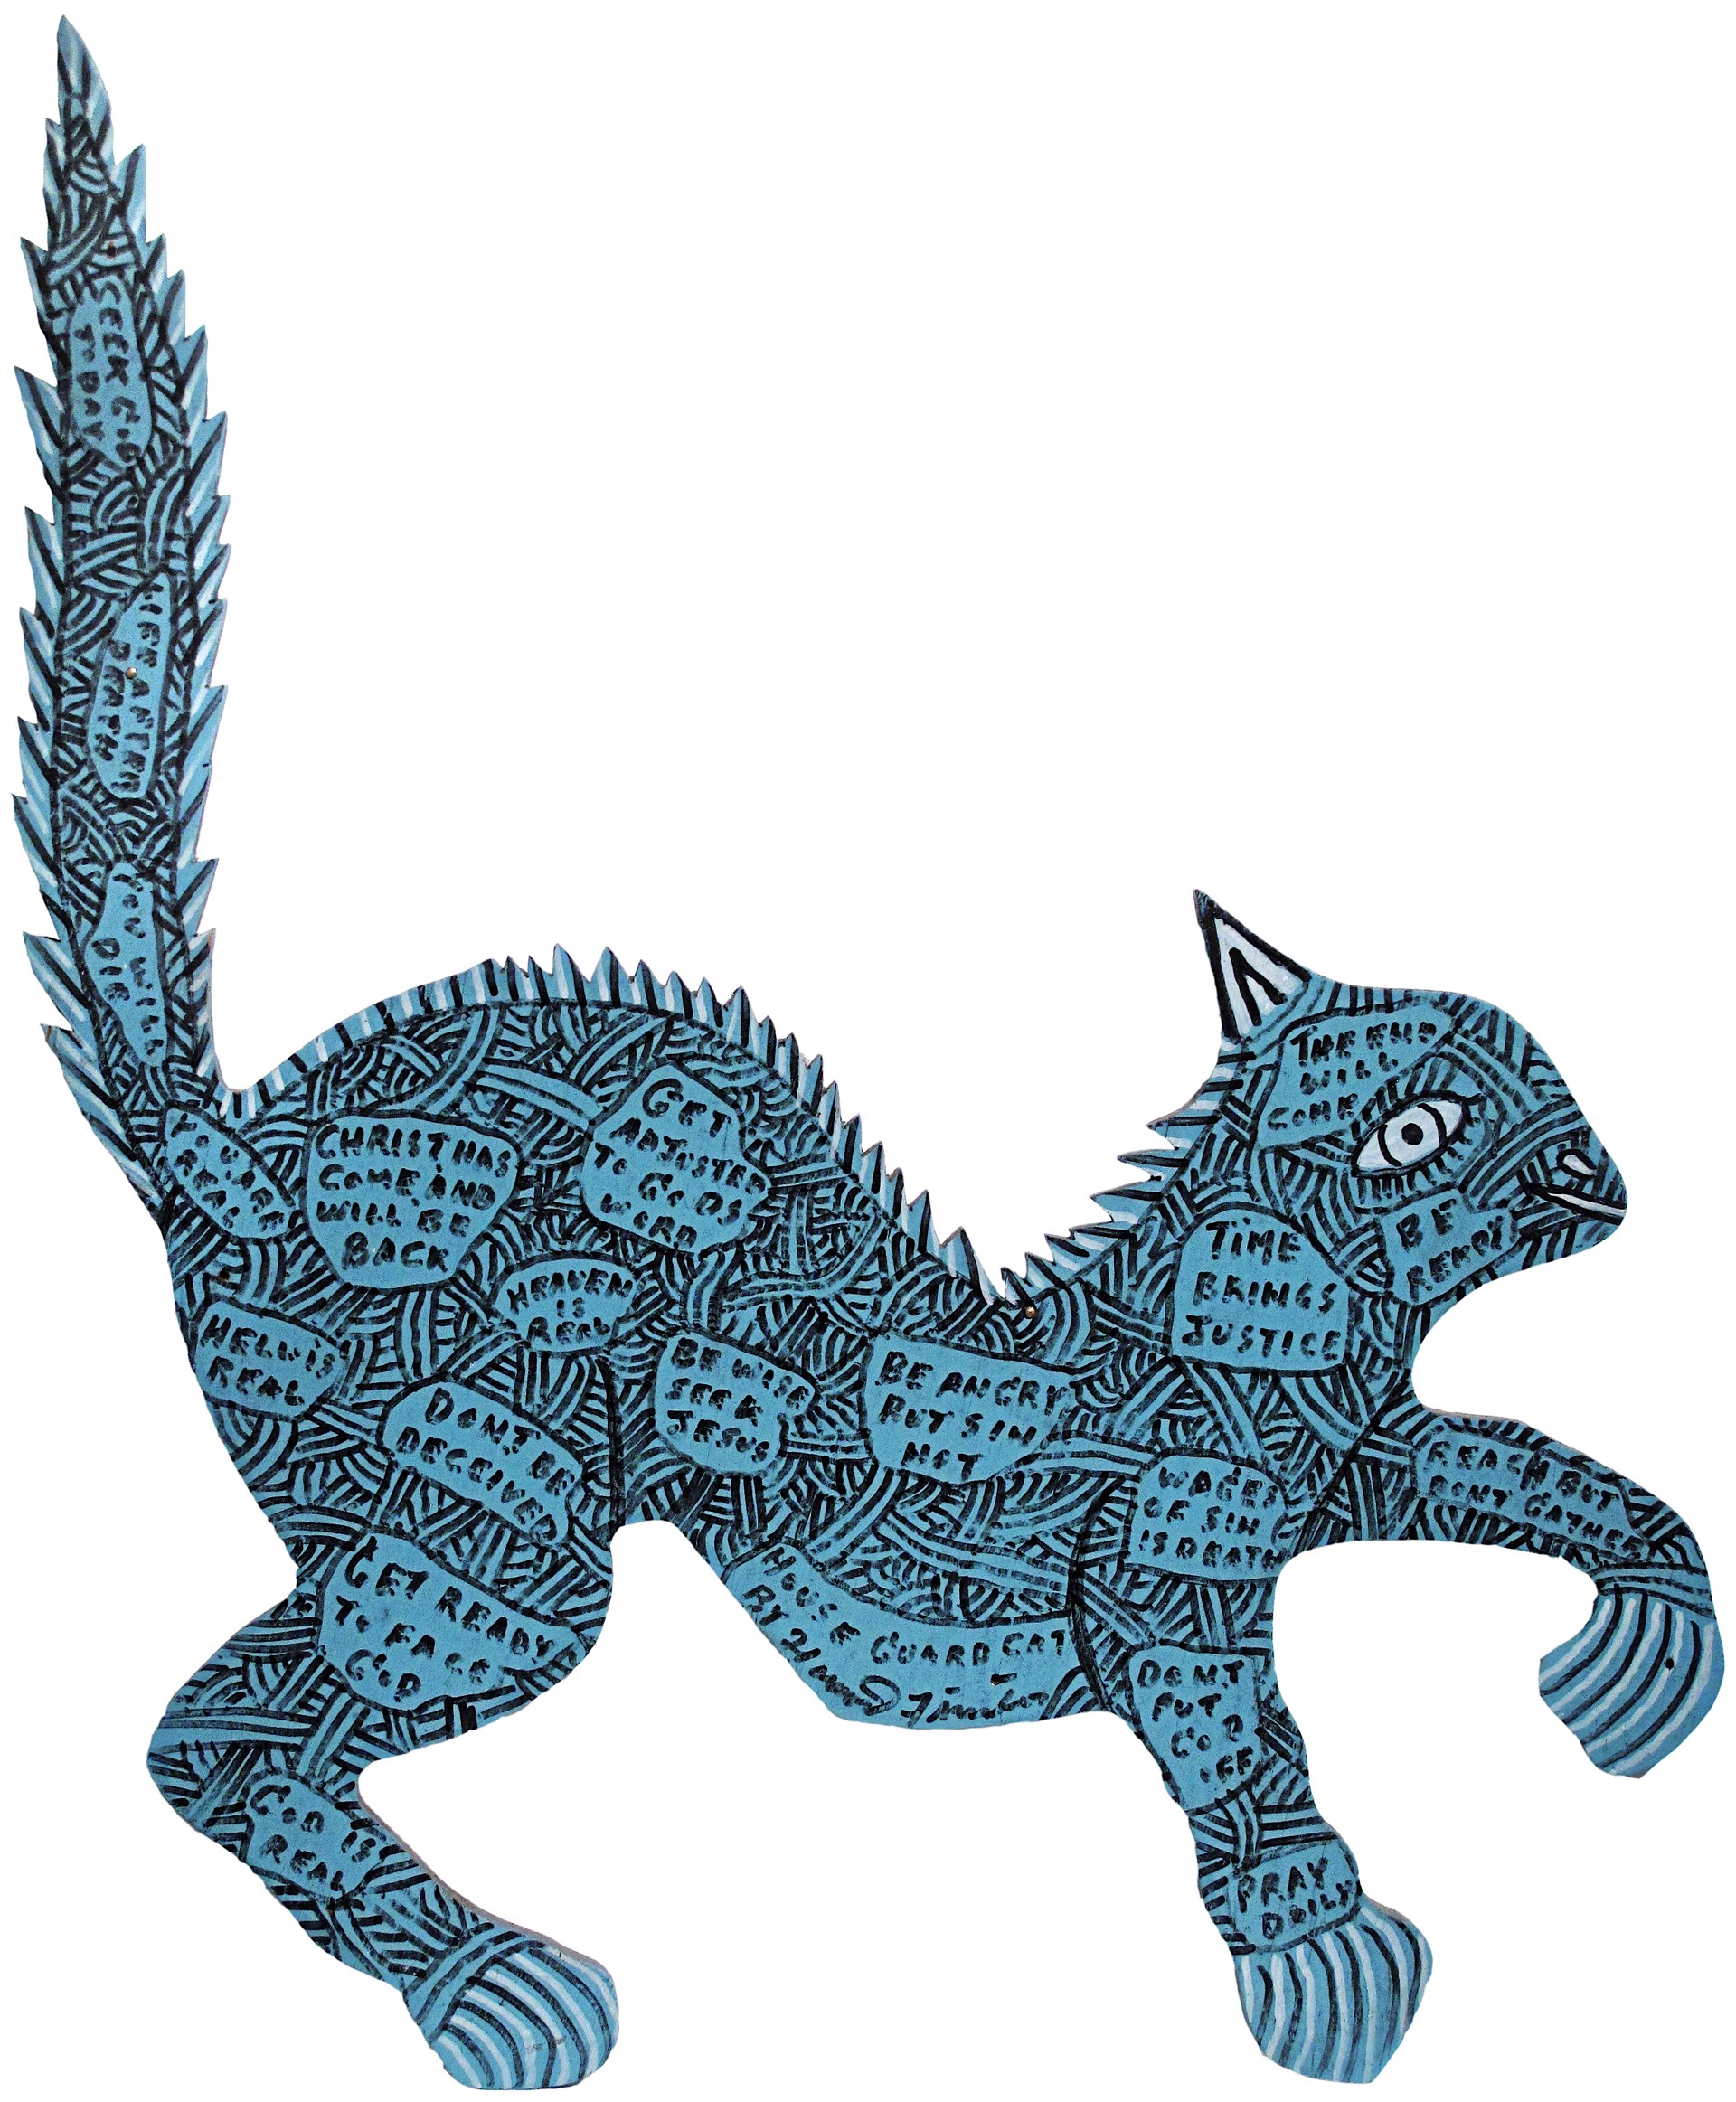 House Guard Cat by Howard Finster